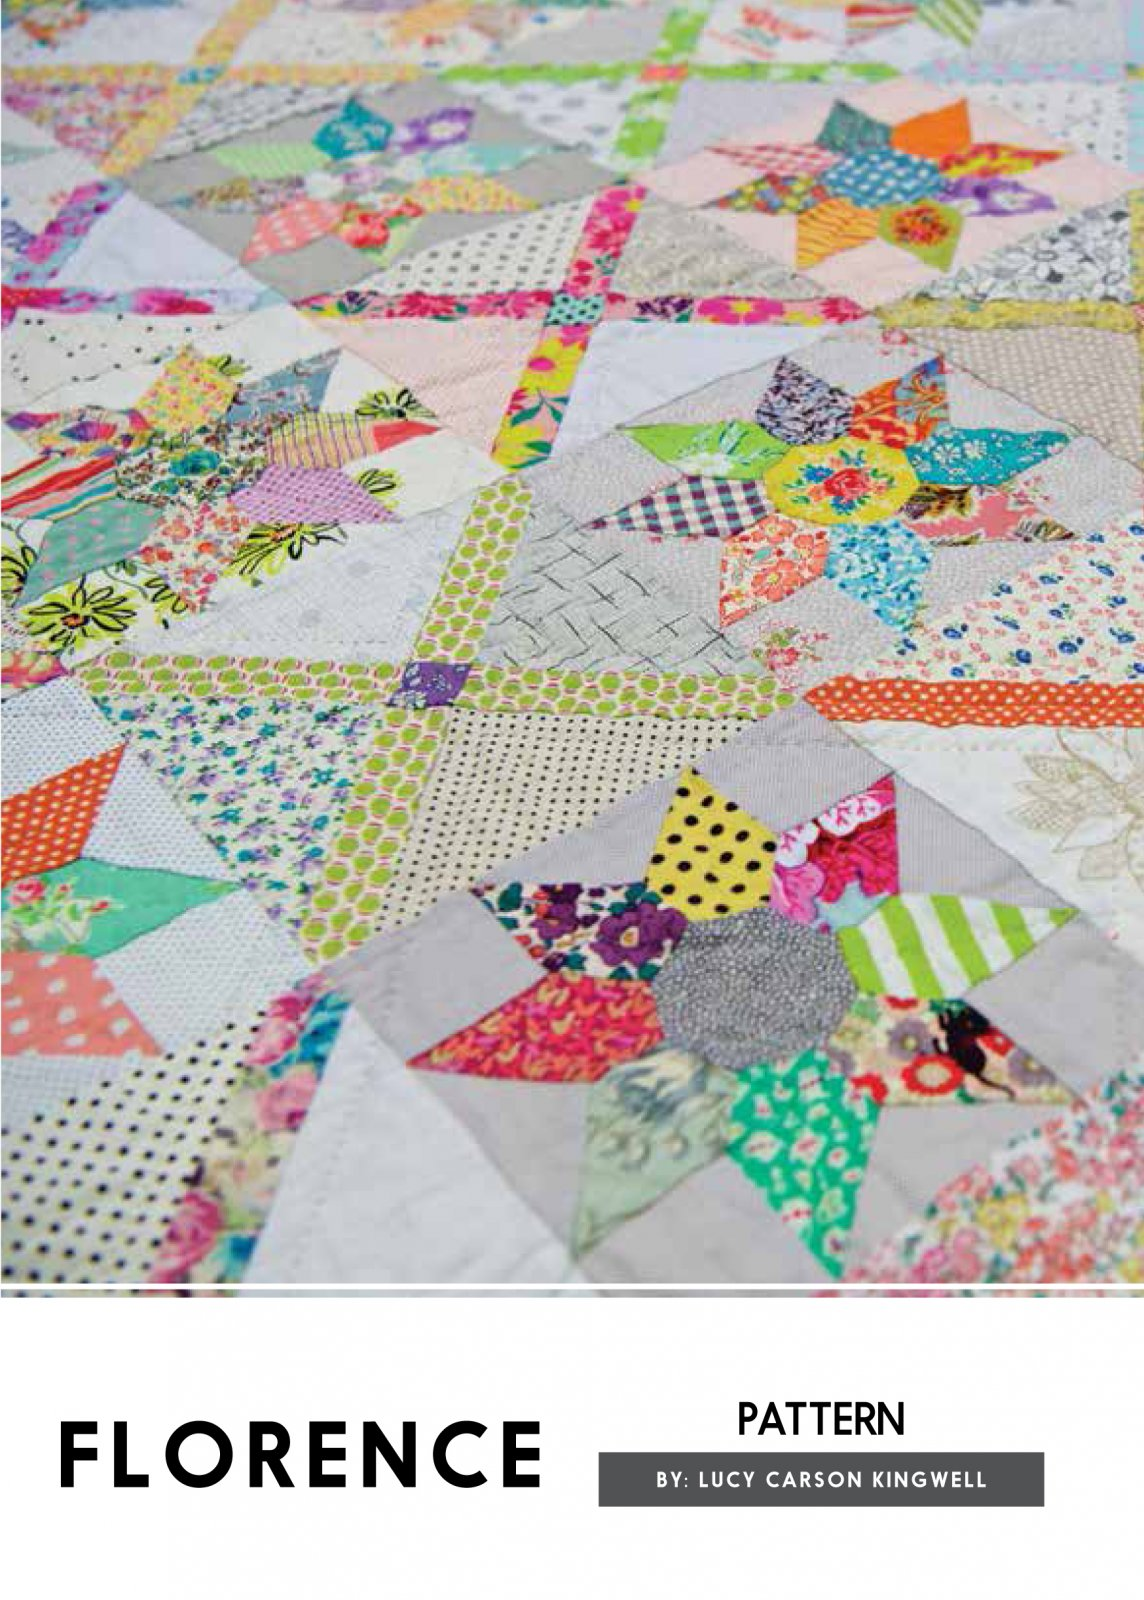 Florence Pattern by Lucy Carson Kingwell